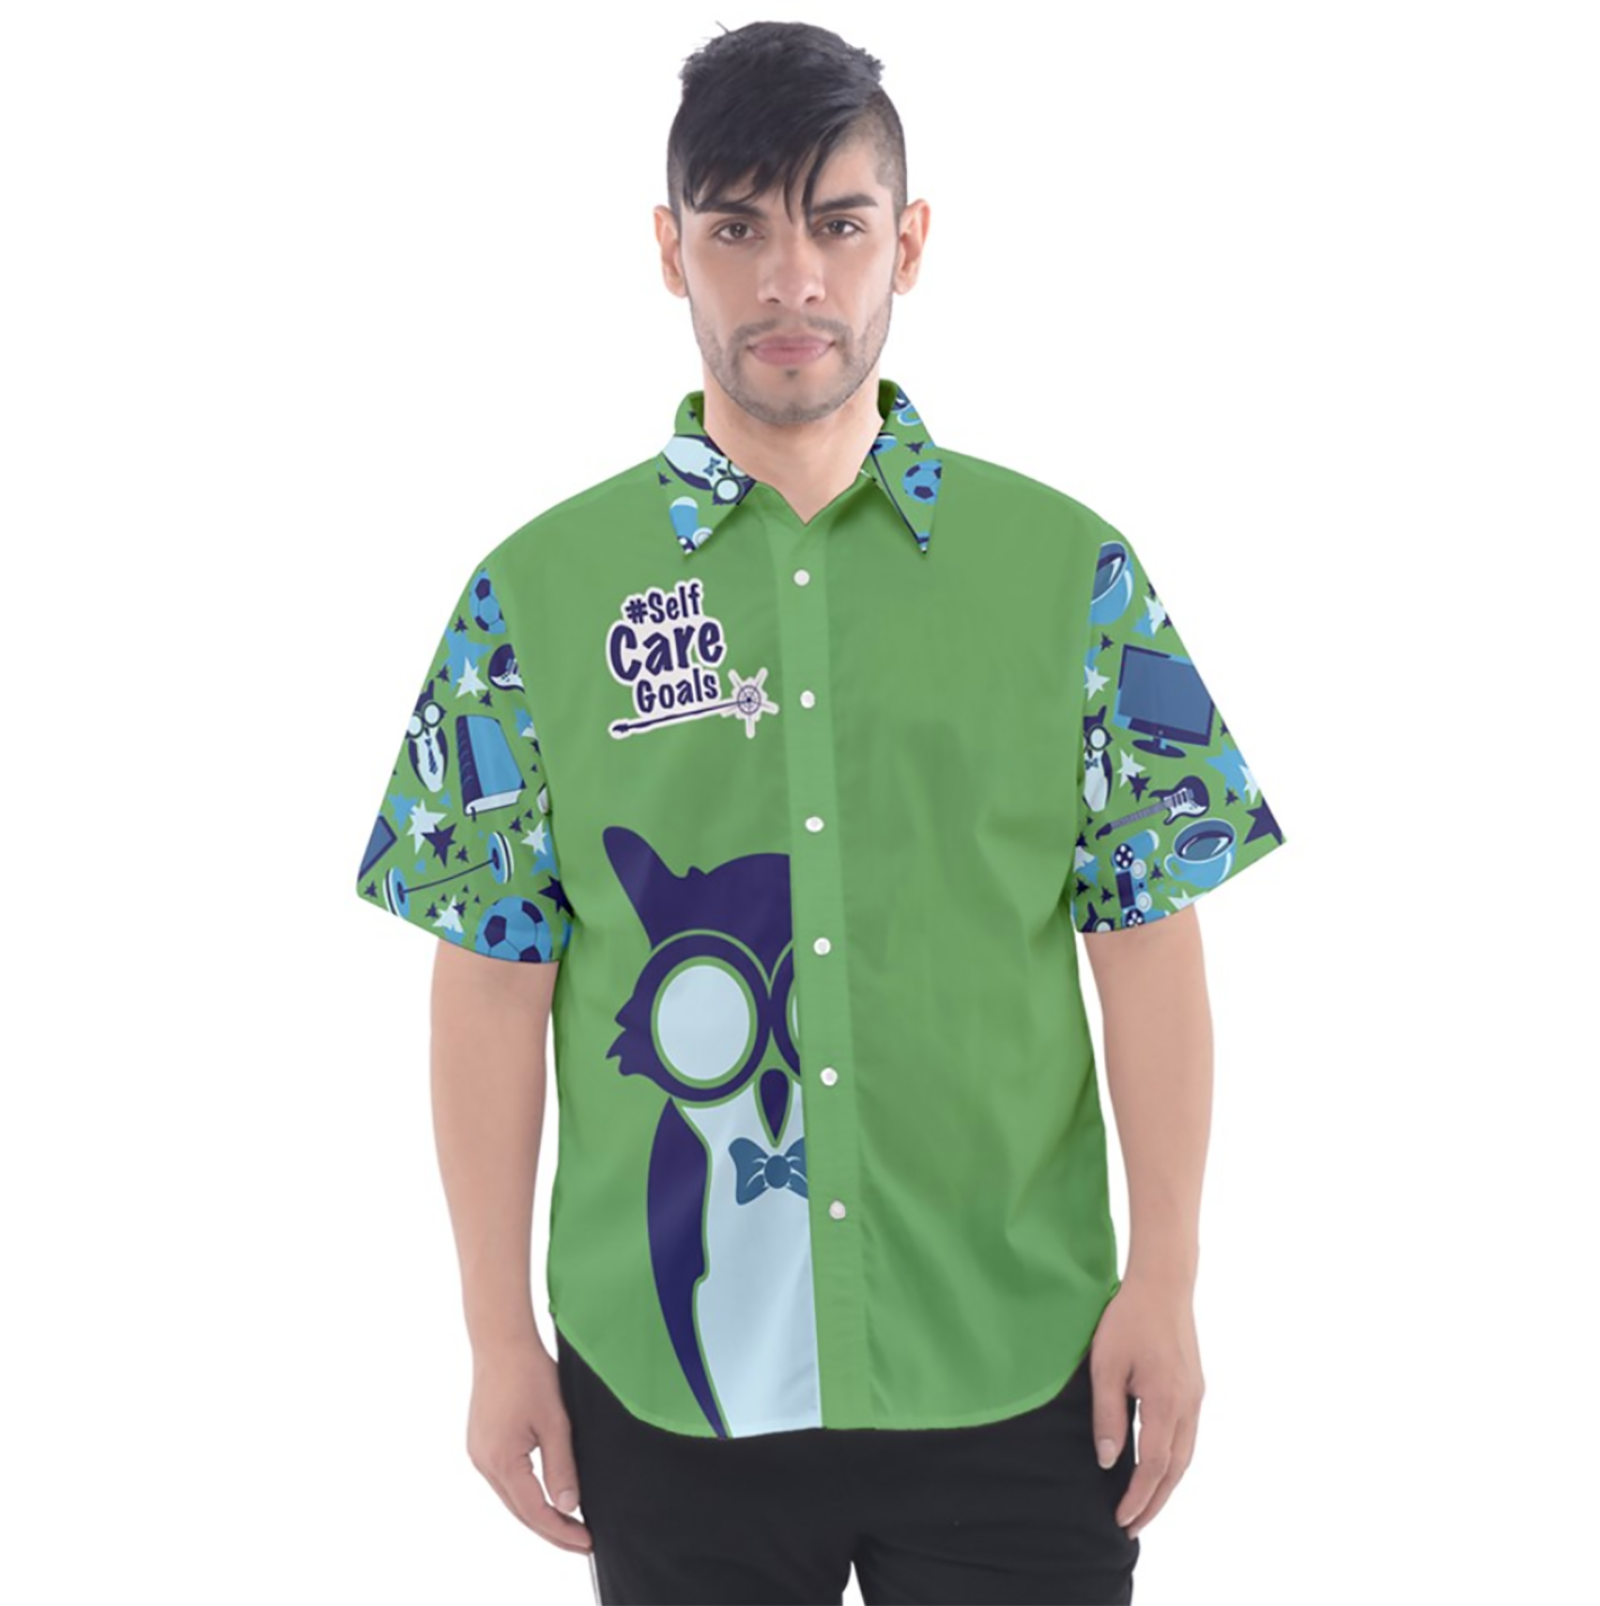 Self-Care Men's Button Up Short Sleeve Shirt (Green Solid Background)